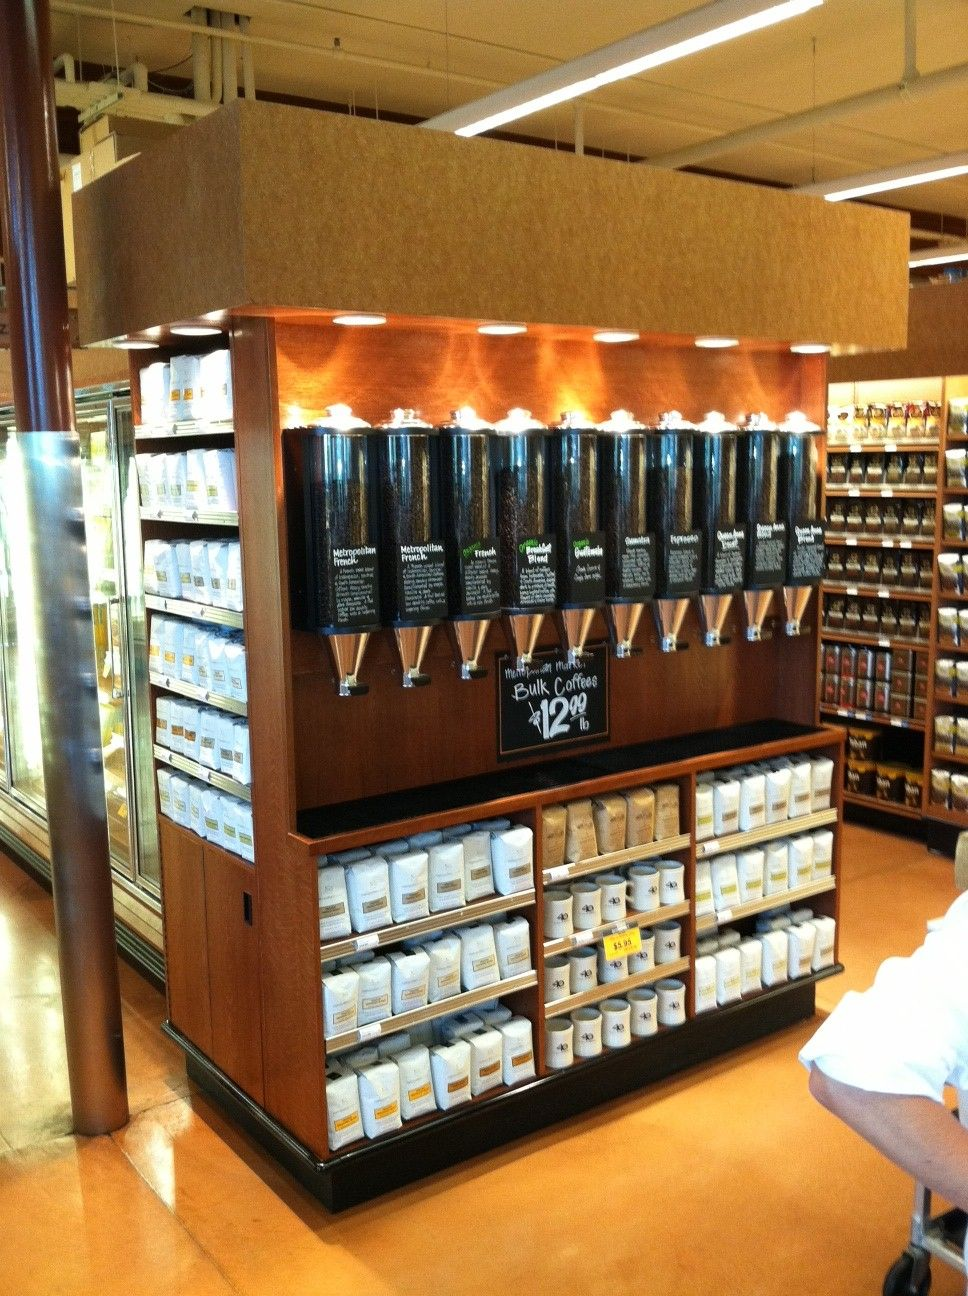 The Original Coffee Bean Hoppers Display Different Coffee Blends For International Metro Markets Coffee Display Coffee Bean Shop Coffee Shop